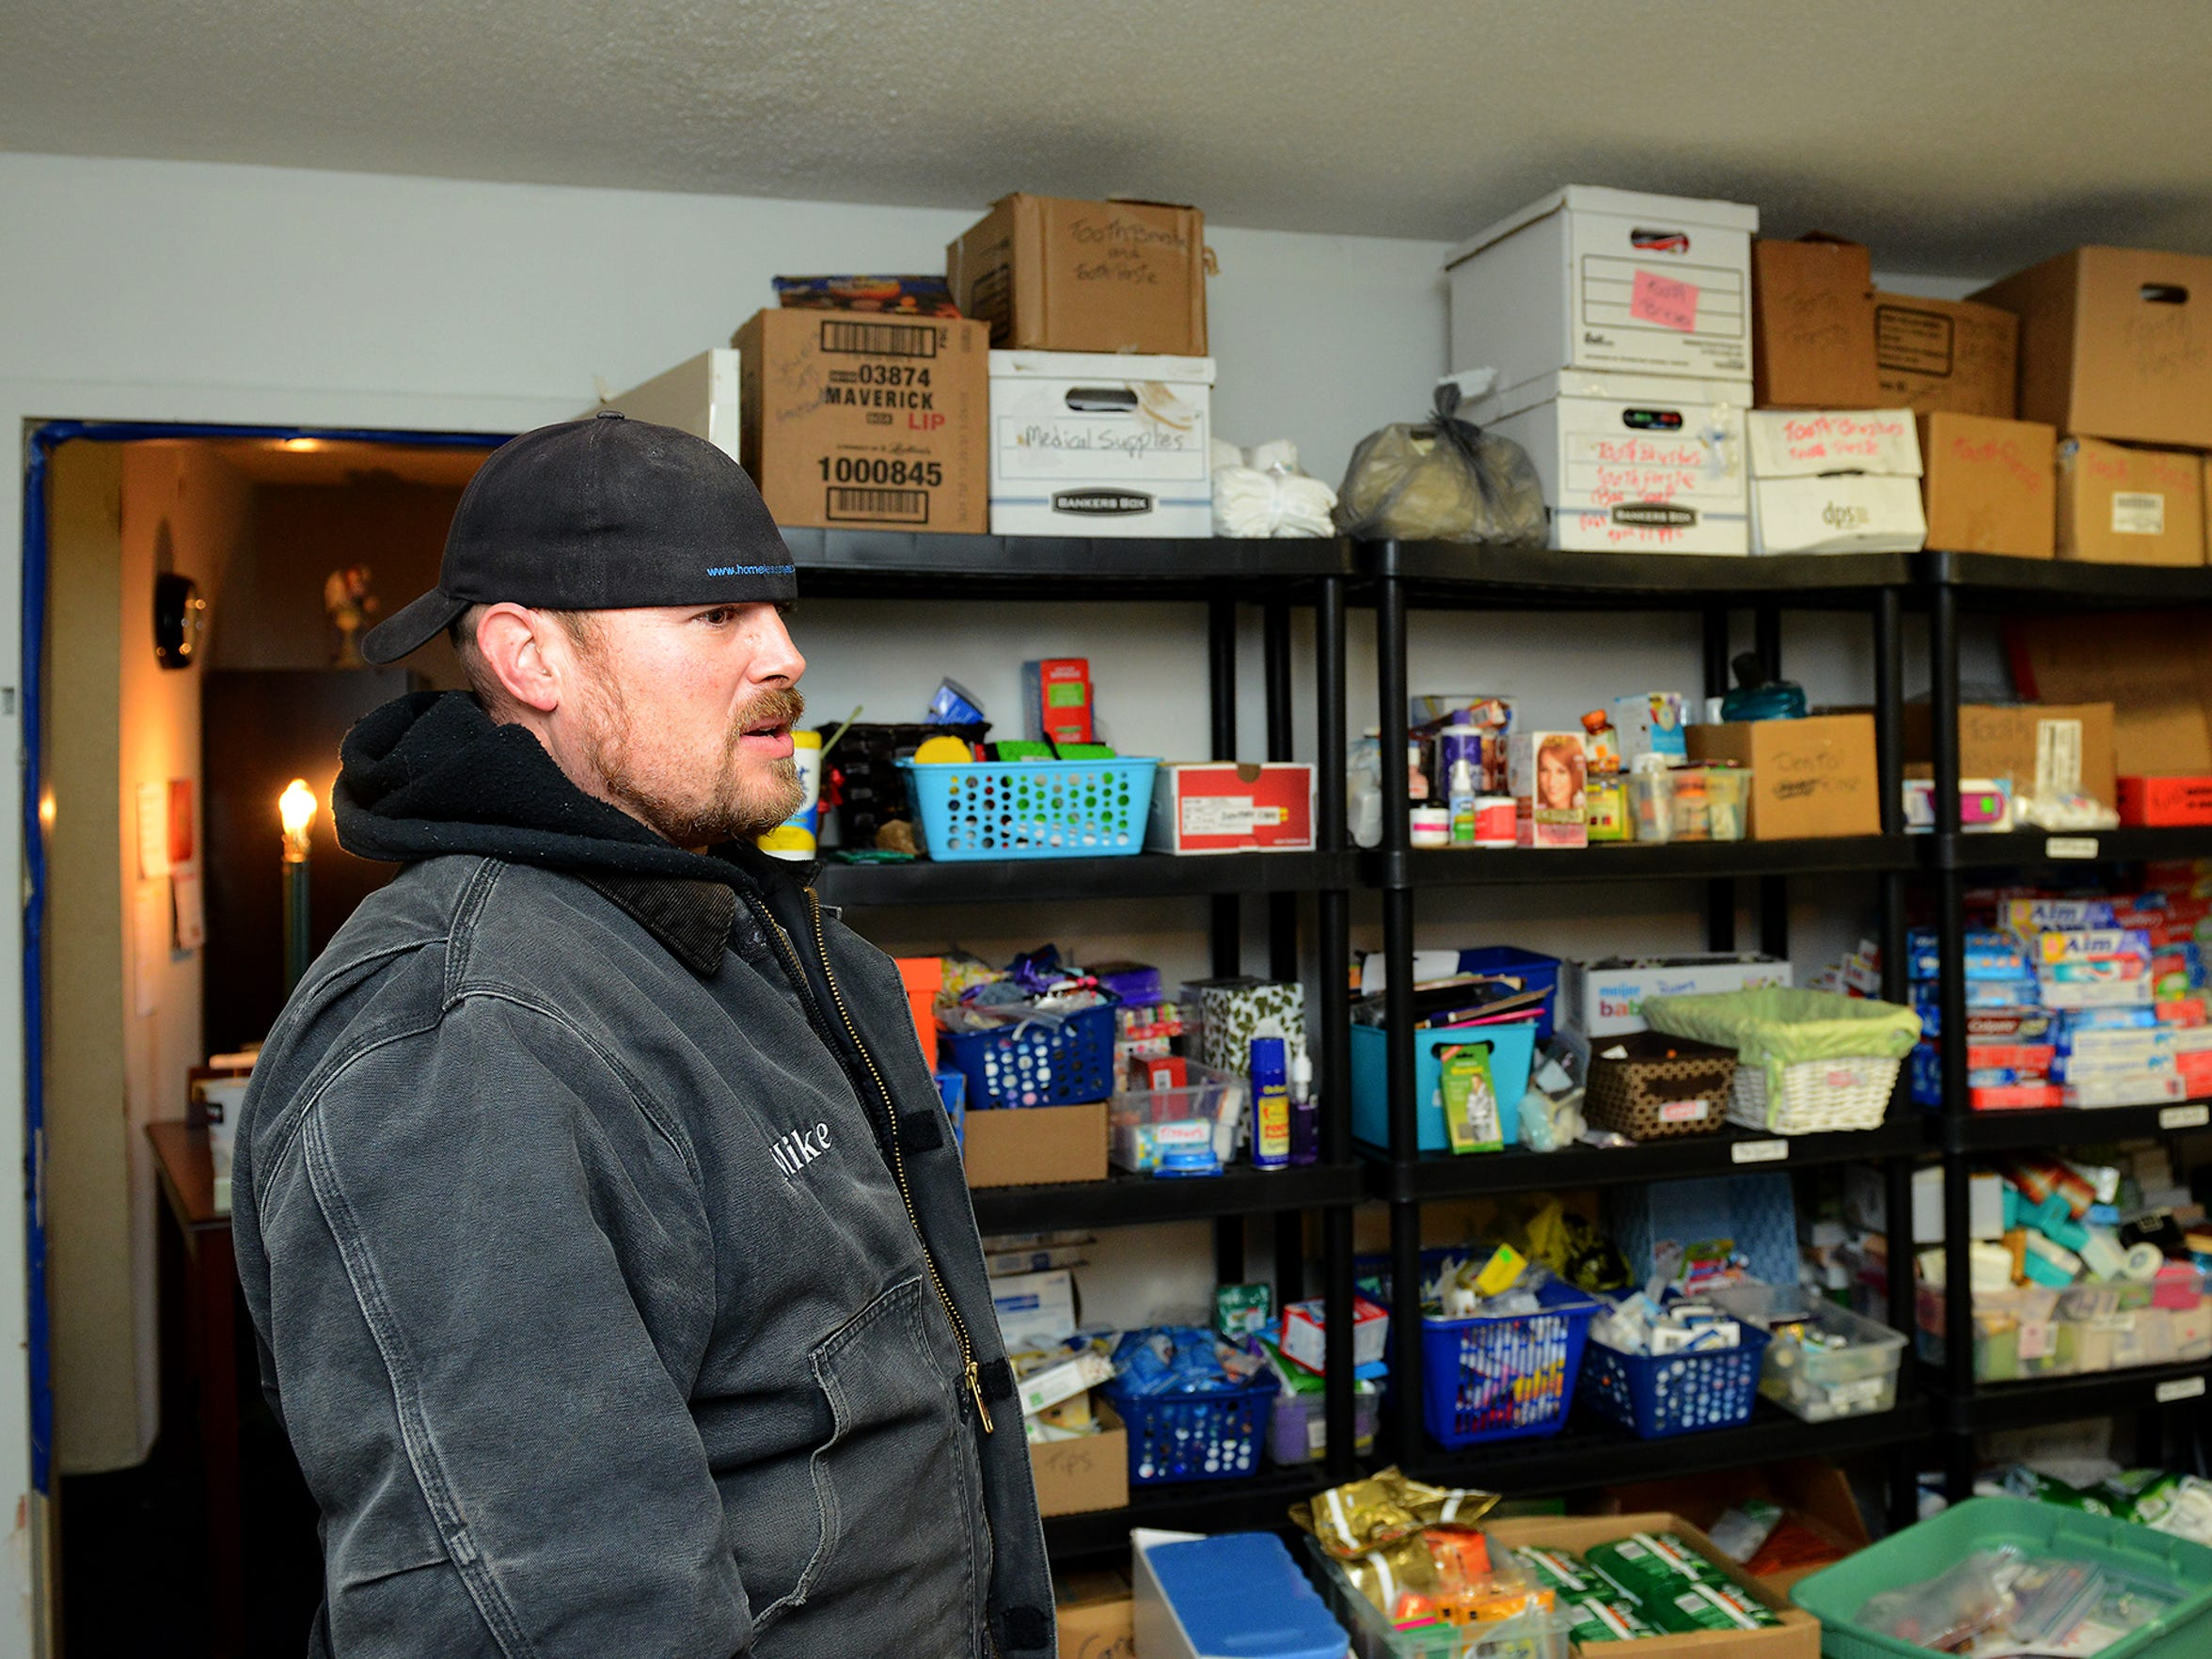 Mike Karl stands in the organization's personal needs storage room in the Magnusson Hotel  Nov., 19 in Lansing. Karl's organization, the Homeless Angels, uses the hotel to house people as they help them find permanent housing. They also provide other assistance to the area's homeless.